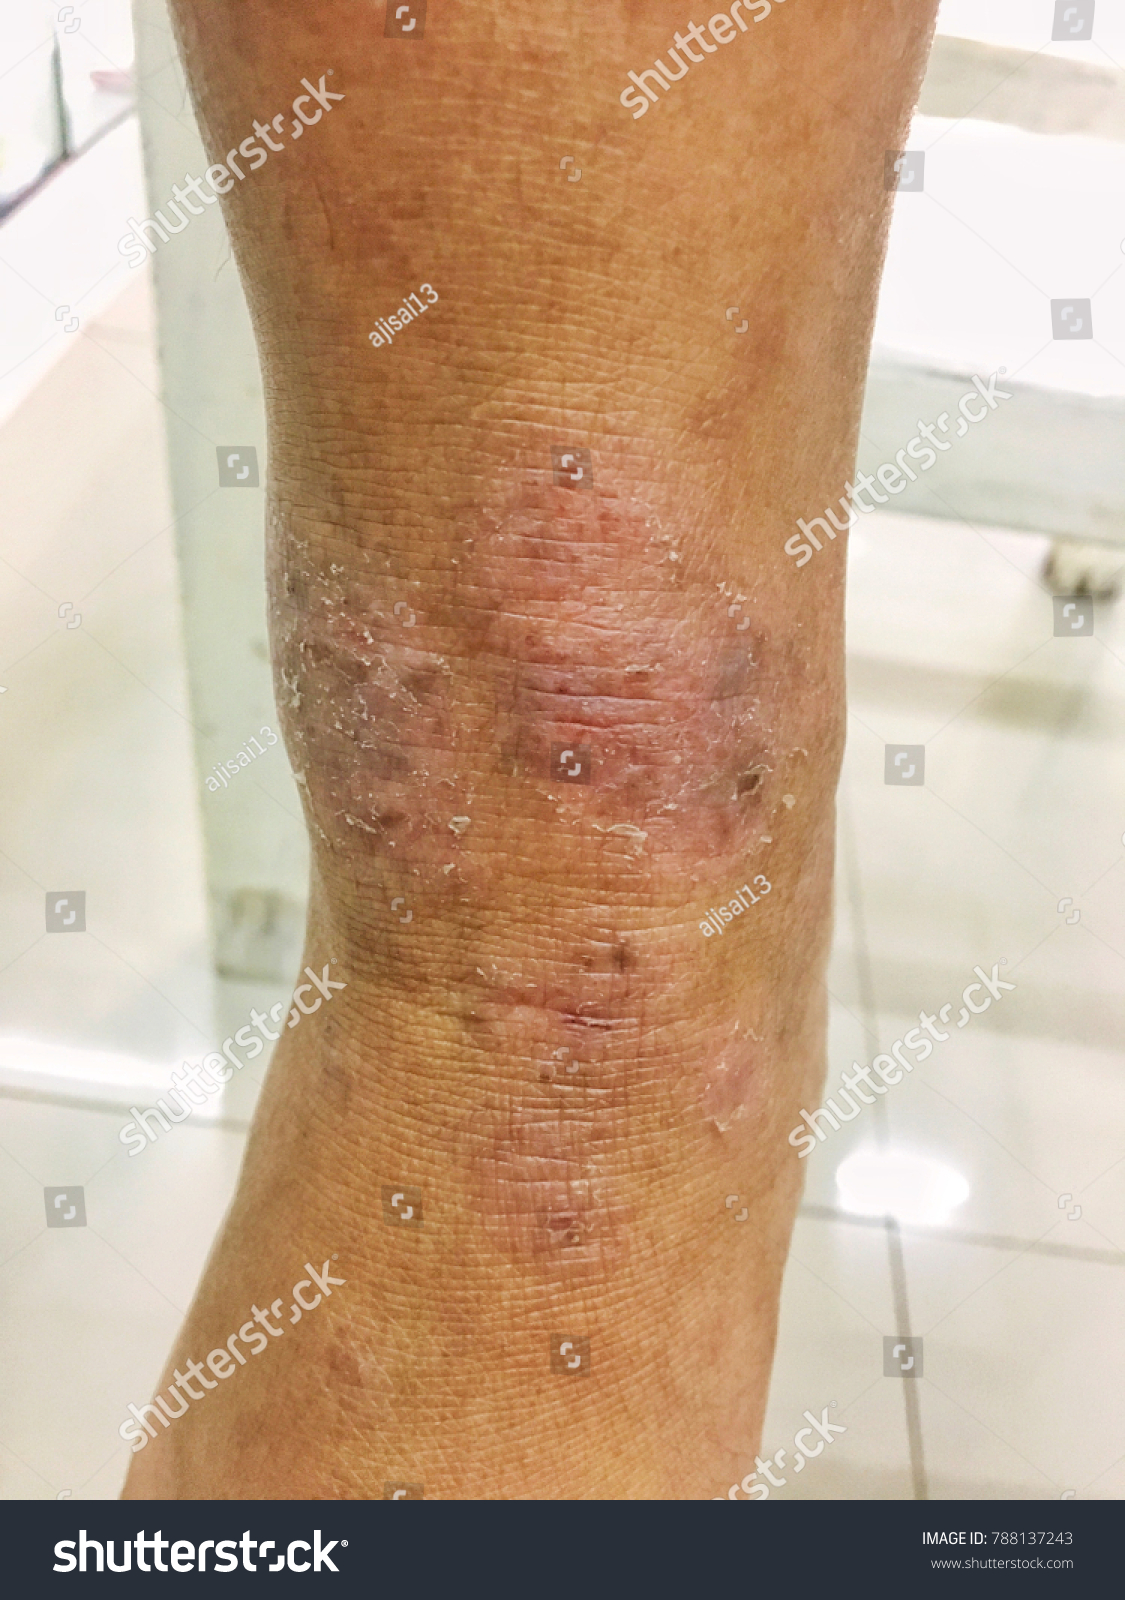 Skin Infection Some Abscess Bloodfungal Infectiondry Stock Photo Edit Now 788137243